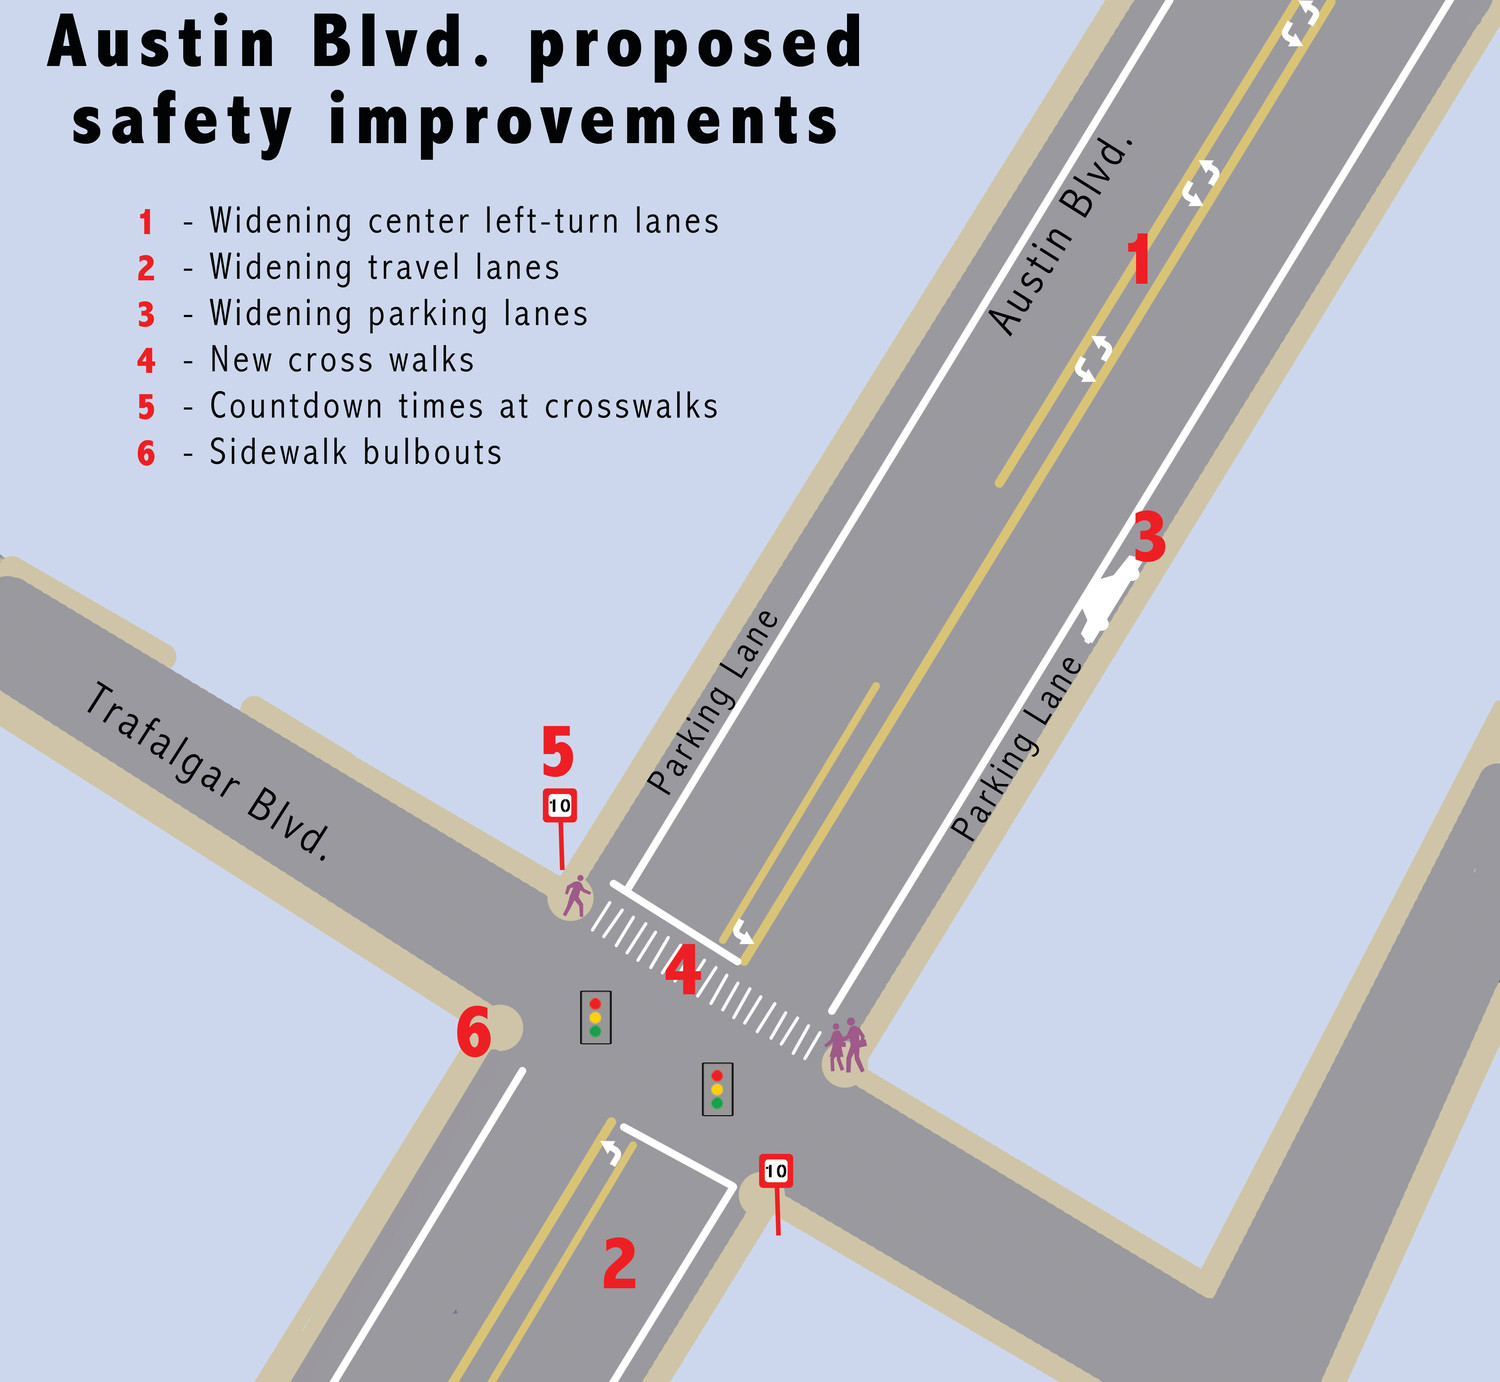 An overview of the safety modifications planned for Austin Boulevard. A $5 million federal grant has been earmarked for the project, which is separate from the proposed speed limit reduction.